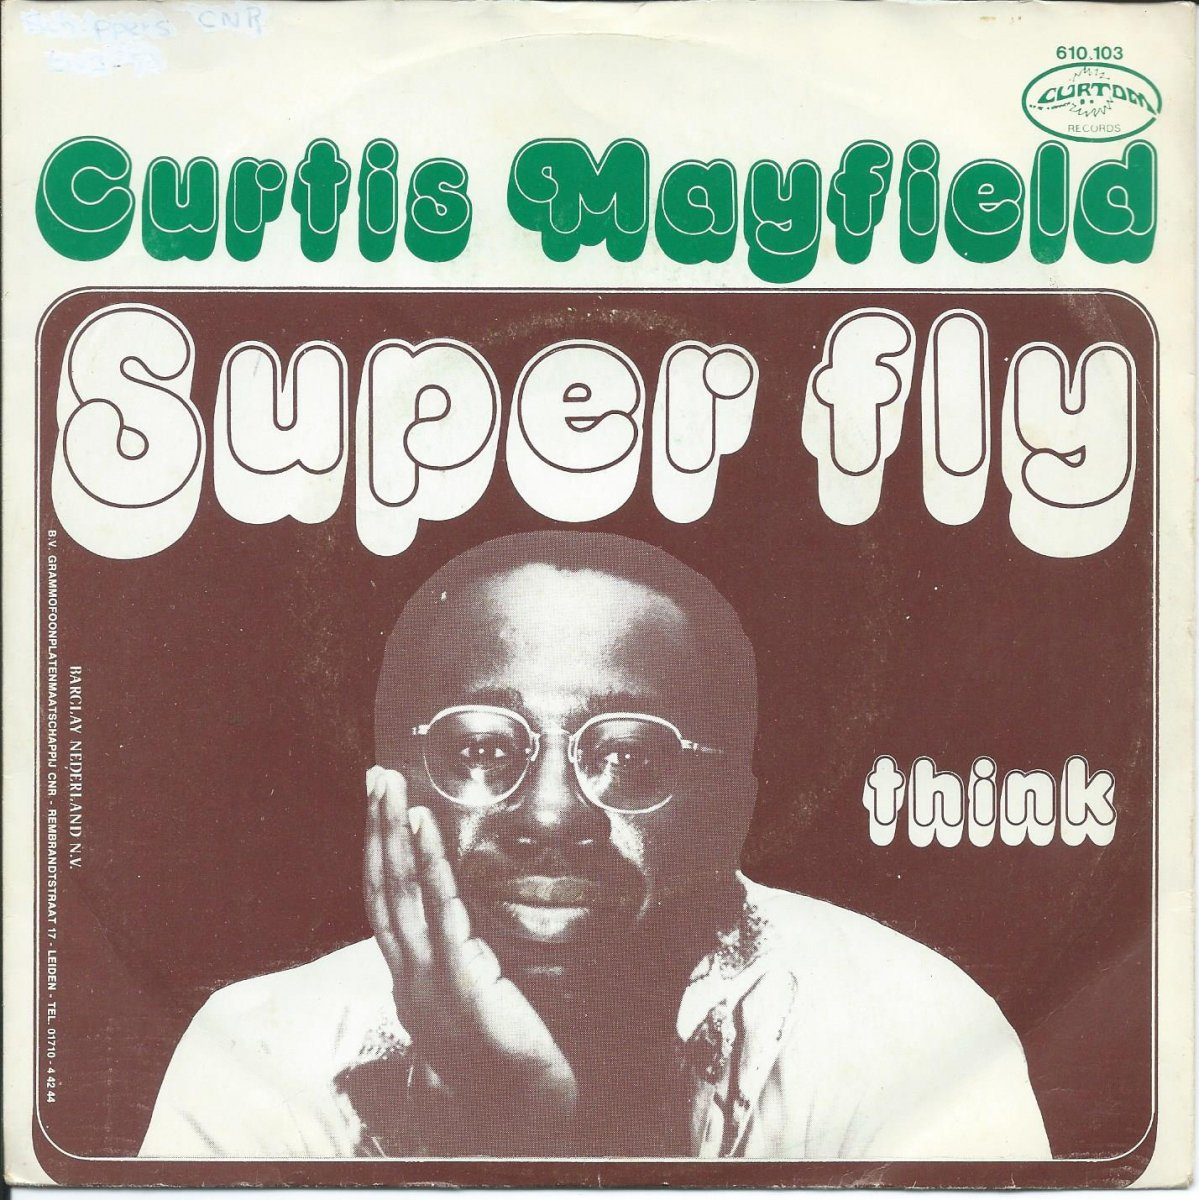 CURTIS MAYFIELD ‎/ SUPERFLY / THINK (INSTRUMENTAL) (7